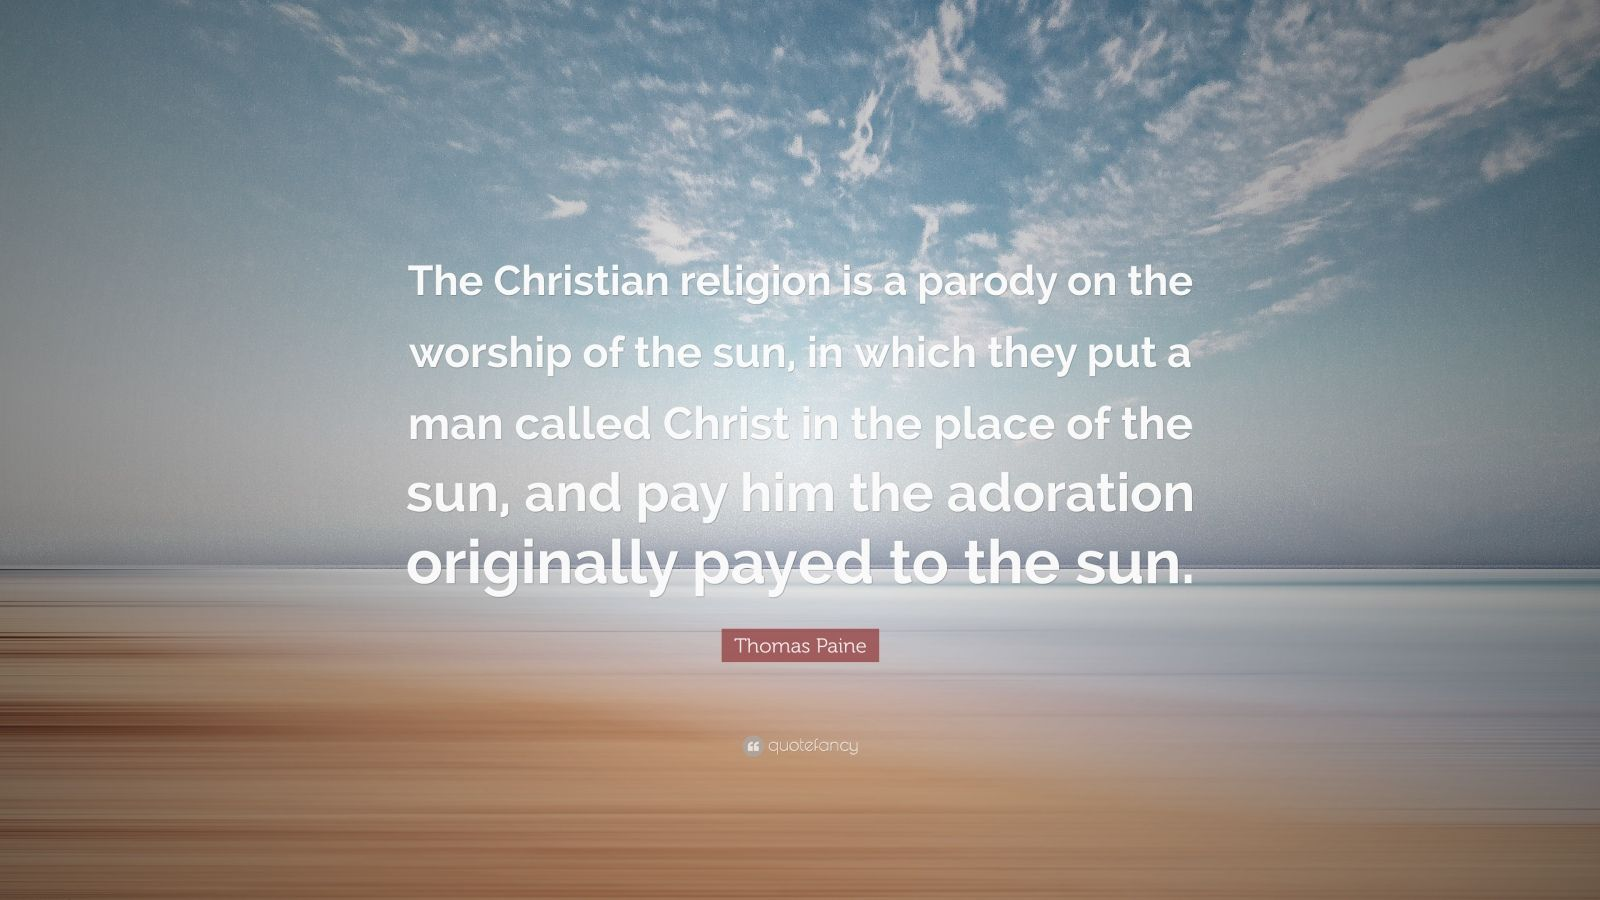 """Thomas Paine Quote: """"The Christian religion is a parody on the worship of the sun, in which they put a man called Christ in the place of the sun, and pay him the adoration originally payed to the sun."""""""